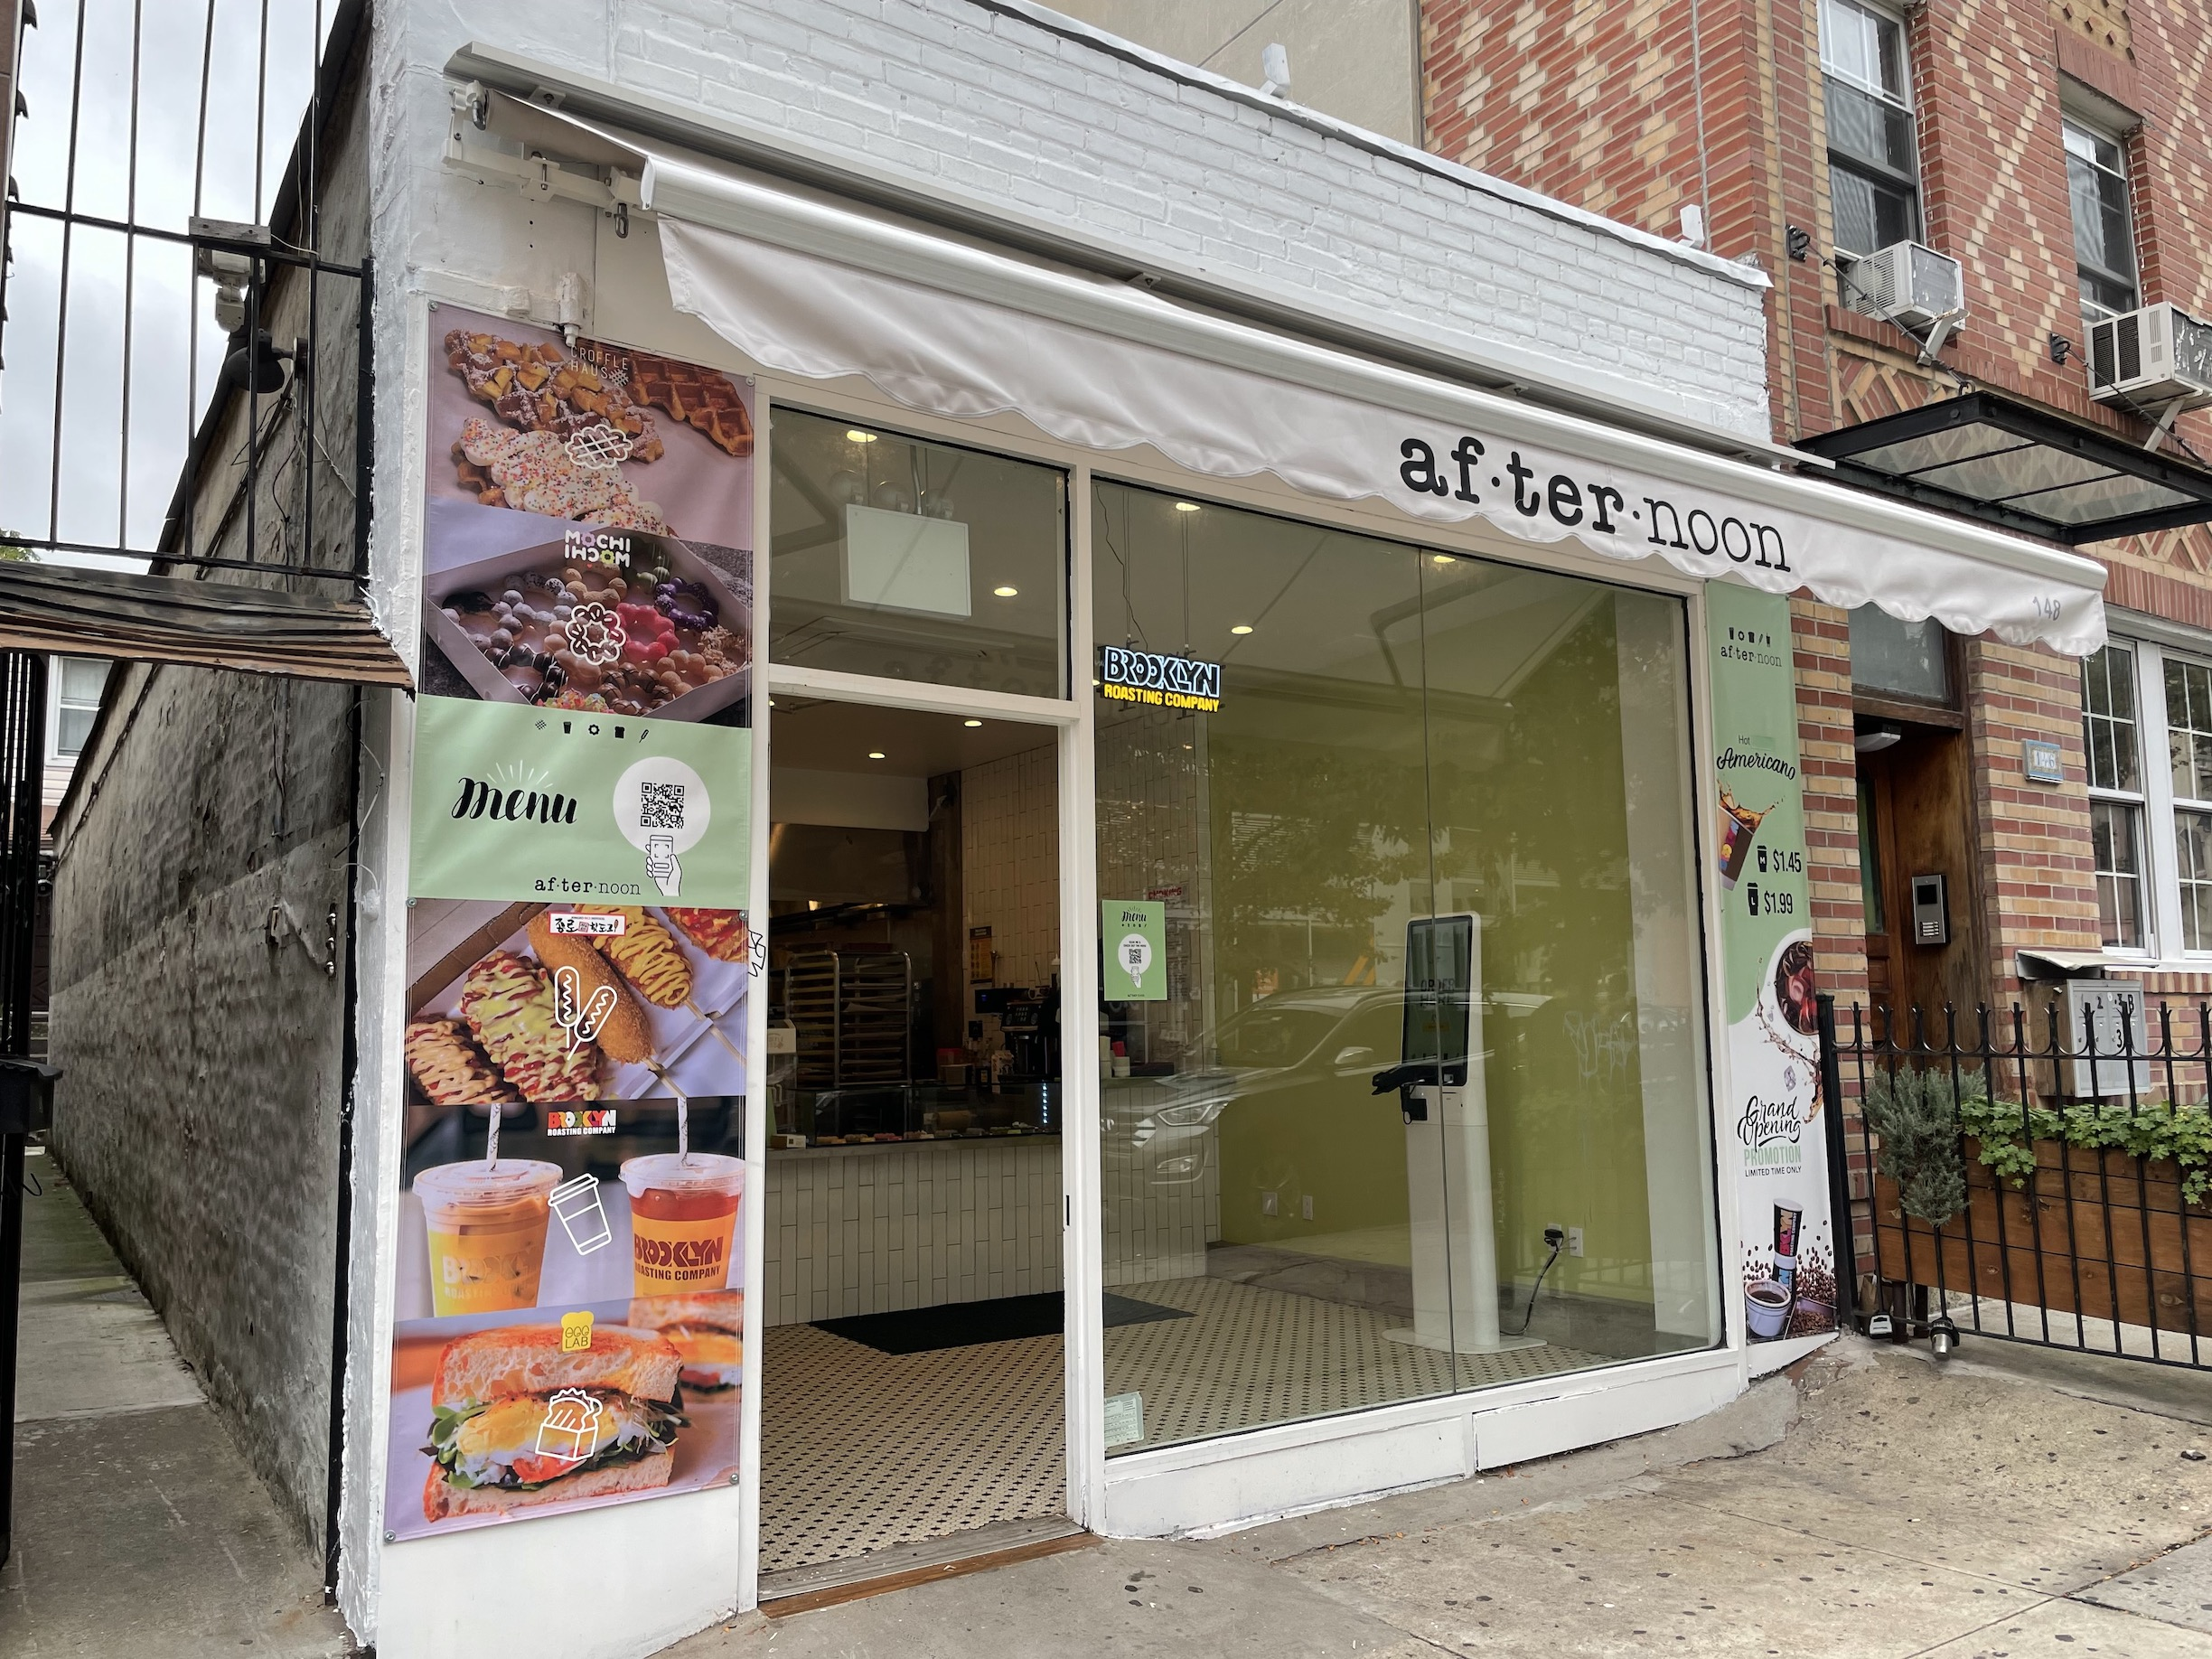 Afternoon Offers Korean Treats in Williamsburg